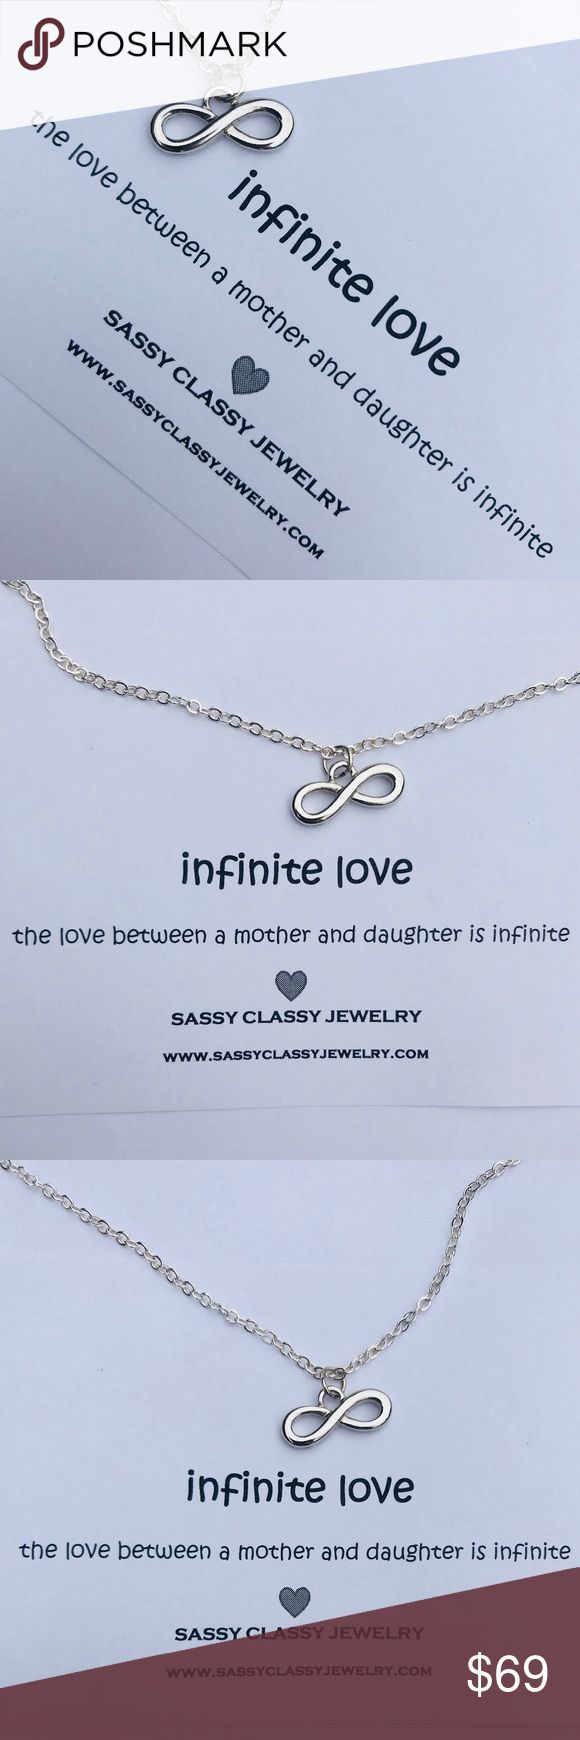 "Infinity Necklace Gift for Mother's Day Jewelry Perfect Mother's Day Gift, Birthday Gift for Mom, or Thank You Present! *PRICE FIRM.  MAKE THIS*  Tell Mom how much you love her & how grateful you are for her infinite love  Give the gift of jewelry with ""infinite love"" message card & silver infinity charm minimalist necklace   ❤️ Silver Infinity Charm Minimalist Necklace 17-18"" necklace chain. Can be made shorter Need multiples, a different message card or charm? No problem! Look at last 5…"